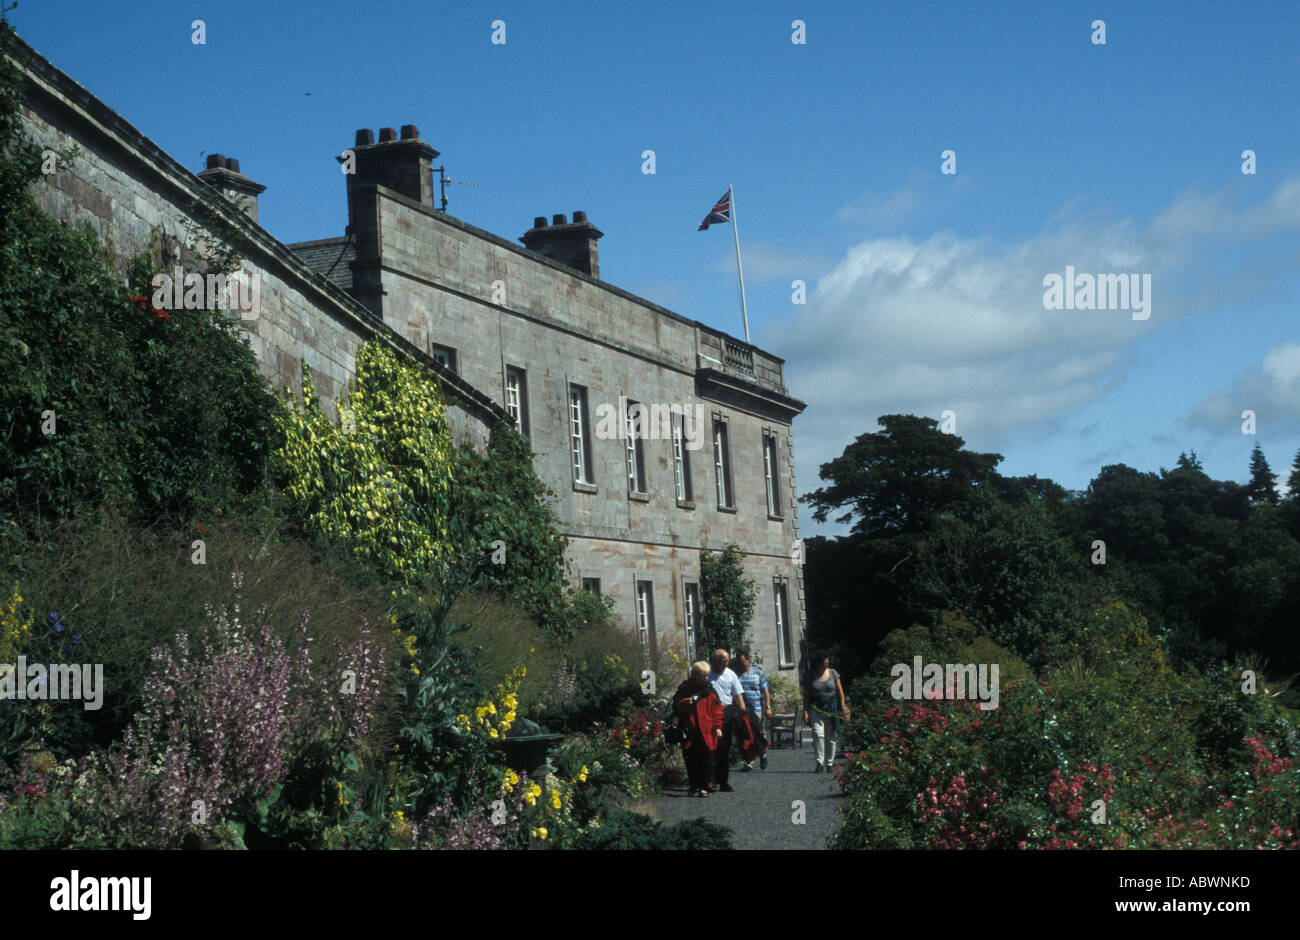 Dalemain House Terrace Penrith Cumbria England UK - Stock Image